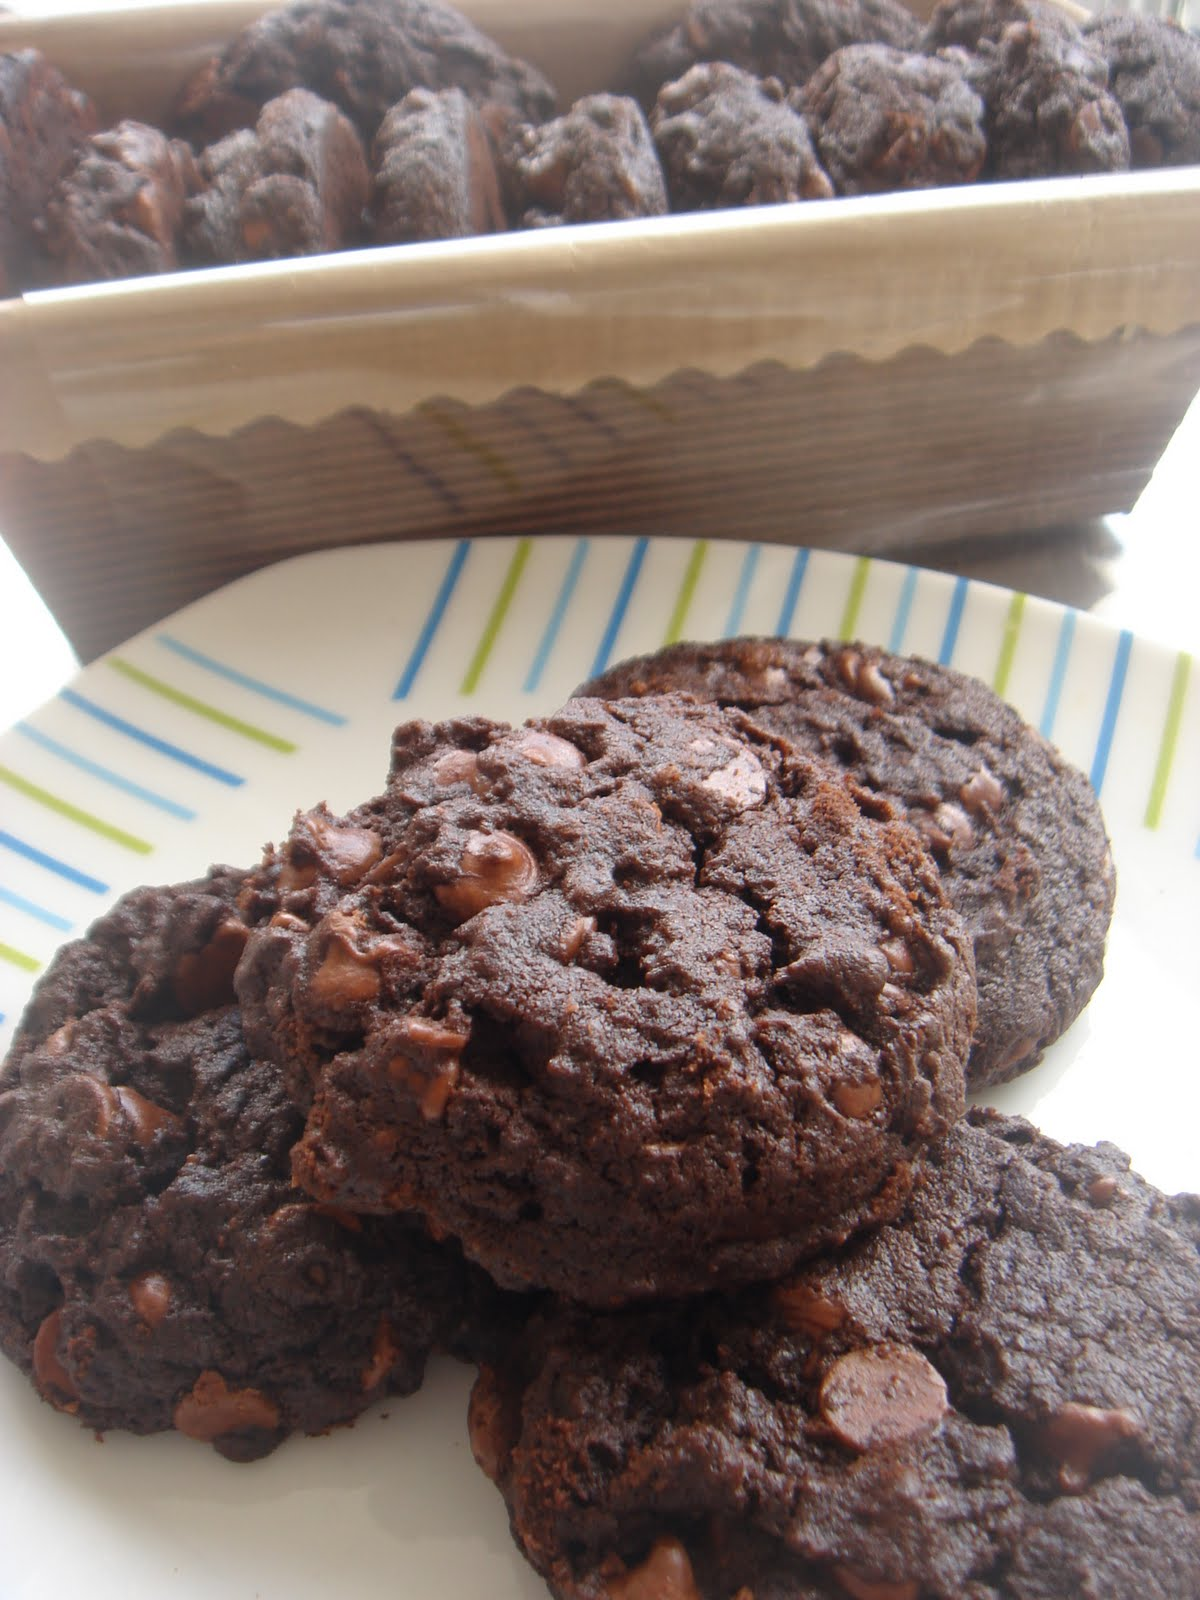 So Sweet: Sua majestade, o cookie de triplo chocolate da